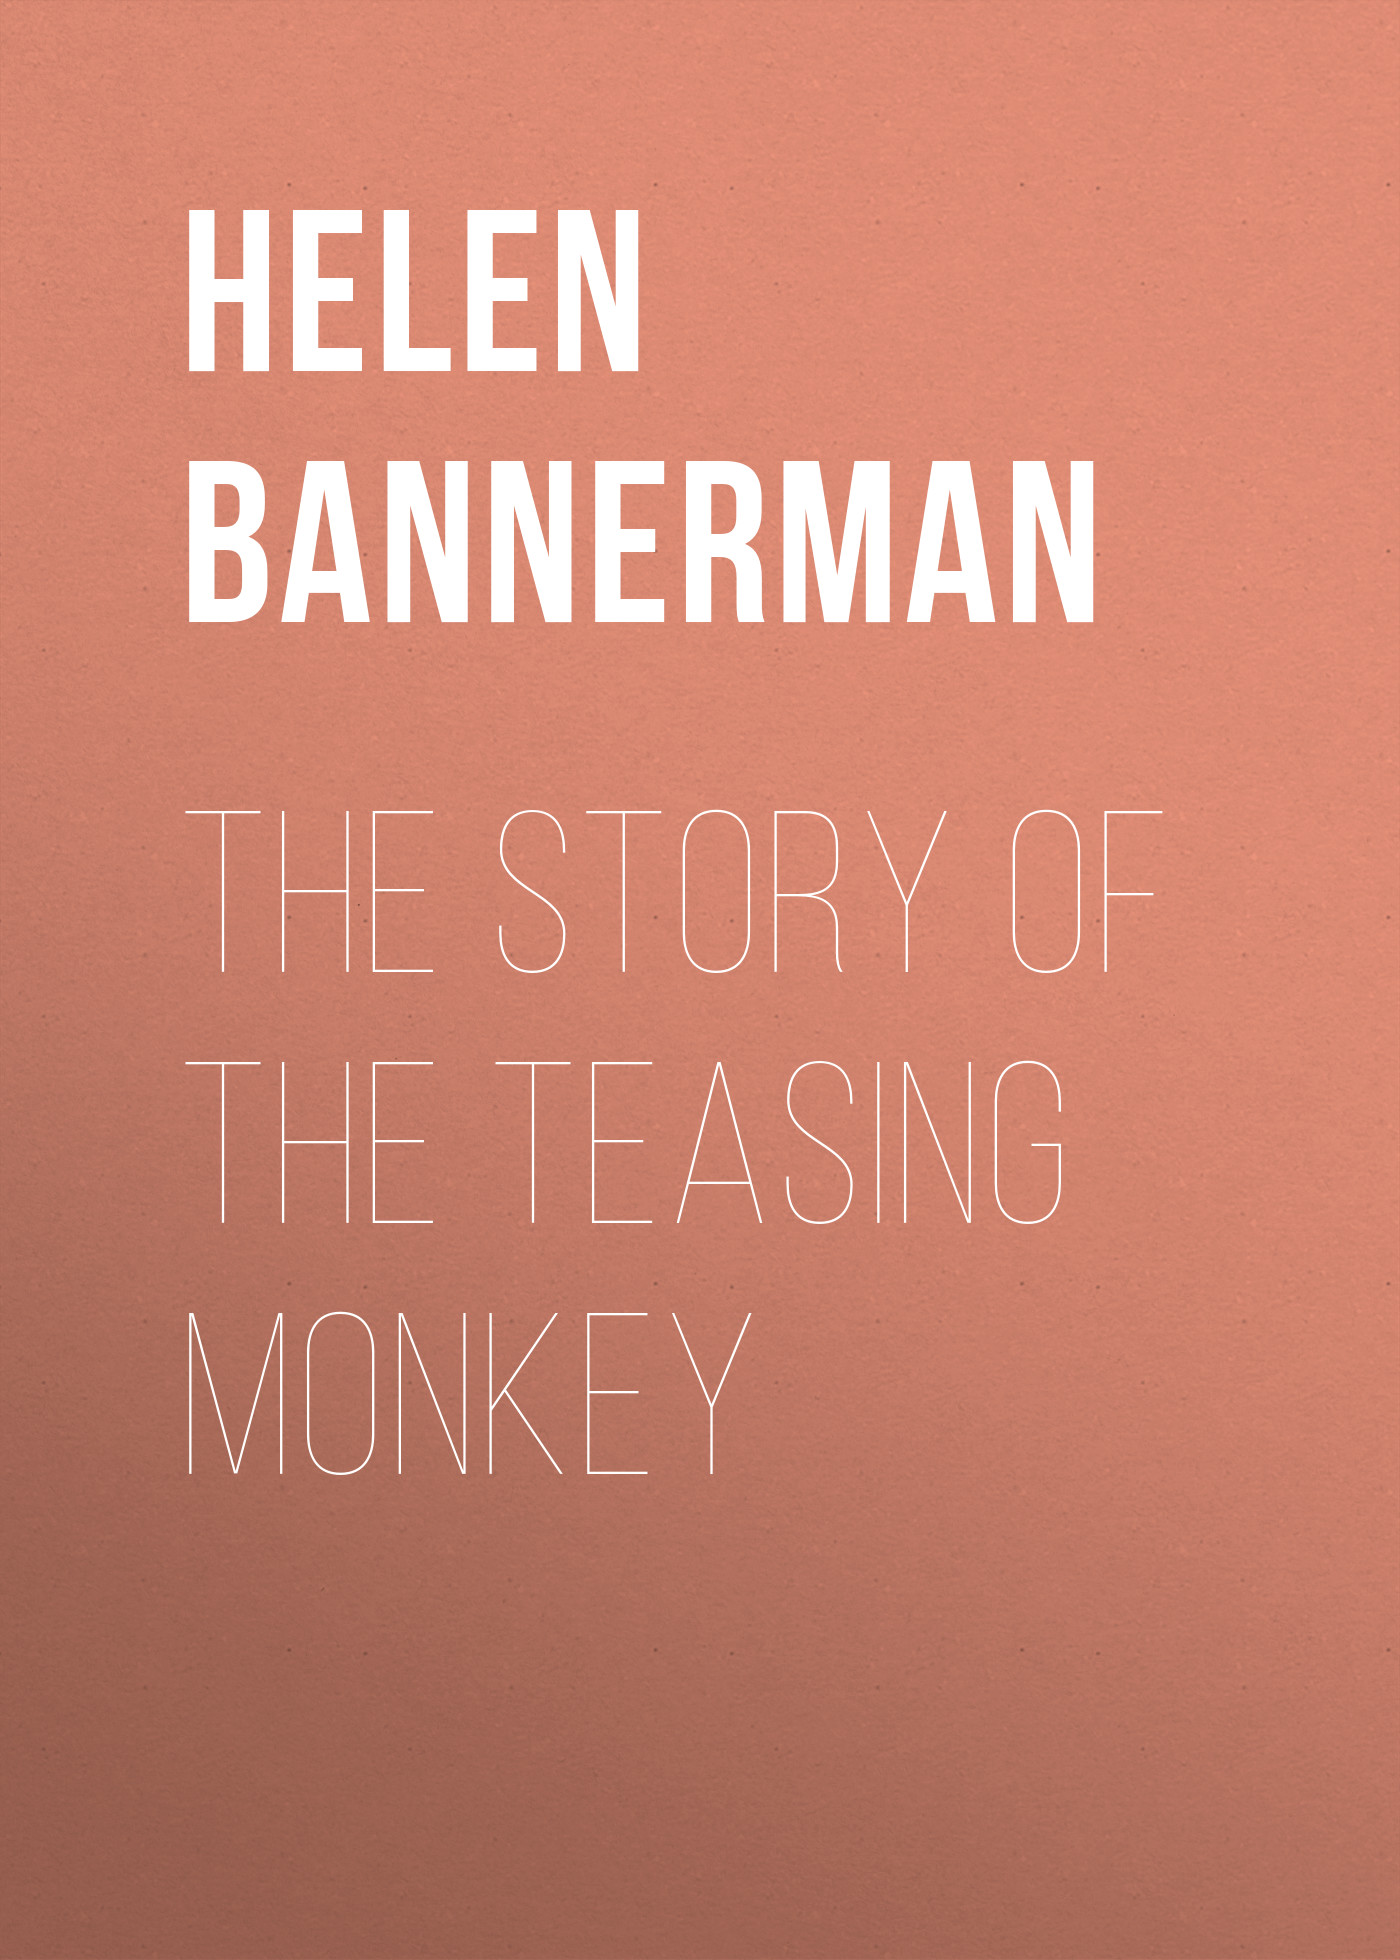 Bannerman Helen The Story of the Teasing Monkey игровой набор playmobil охотник за привидениями игон спенглер 9346pm